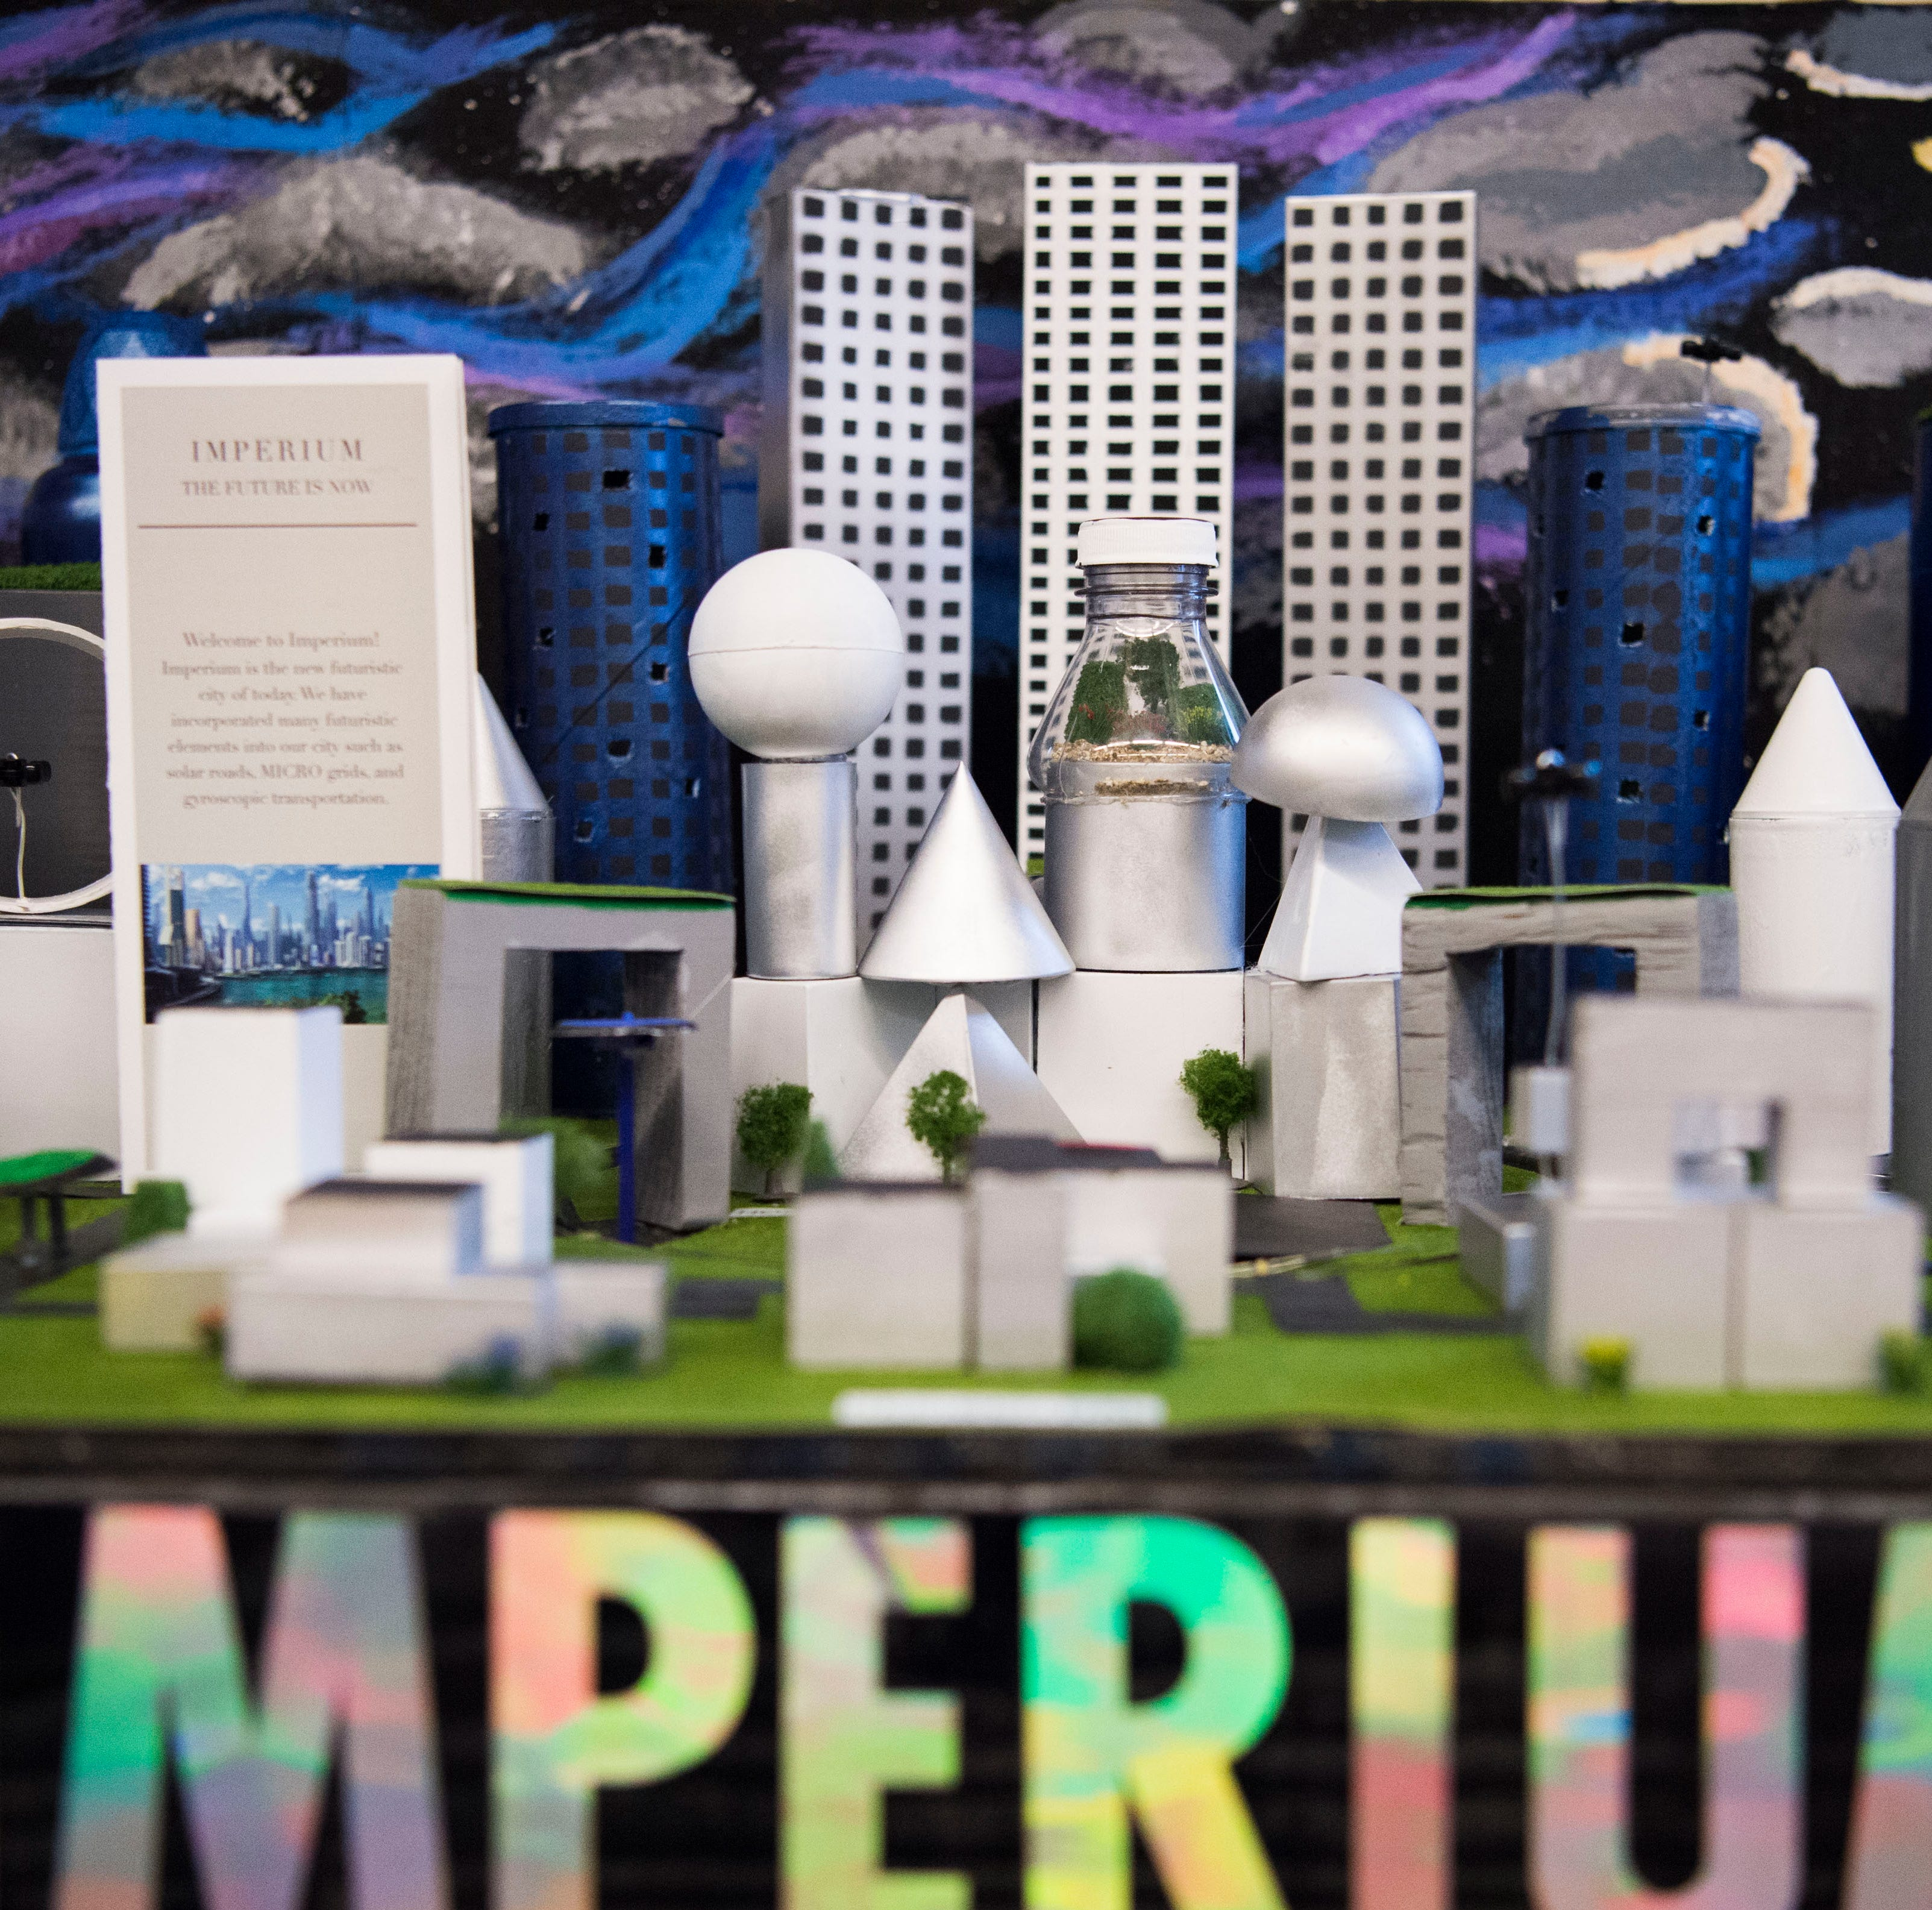 What could cities look like in 100 years? These TN middle school students have an idea